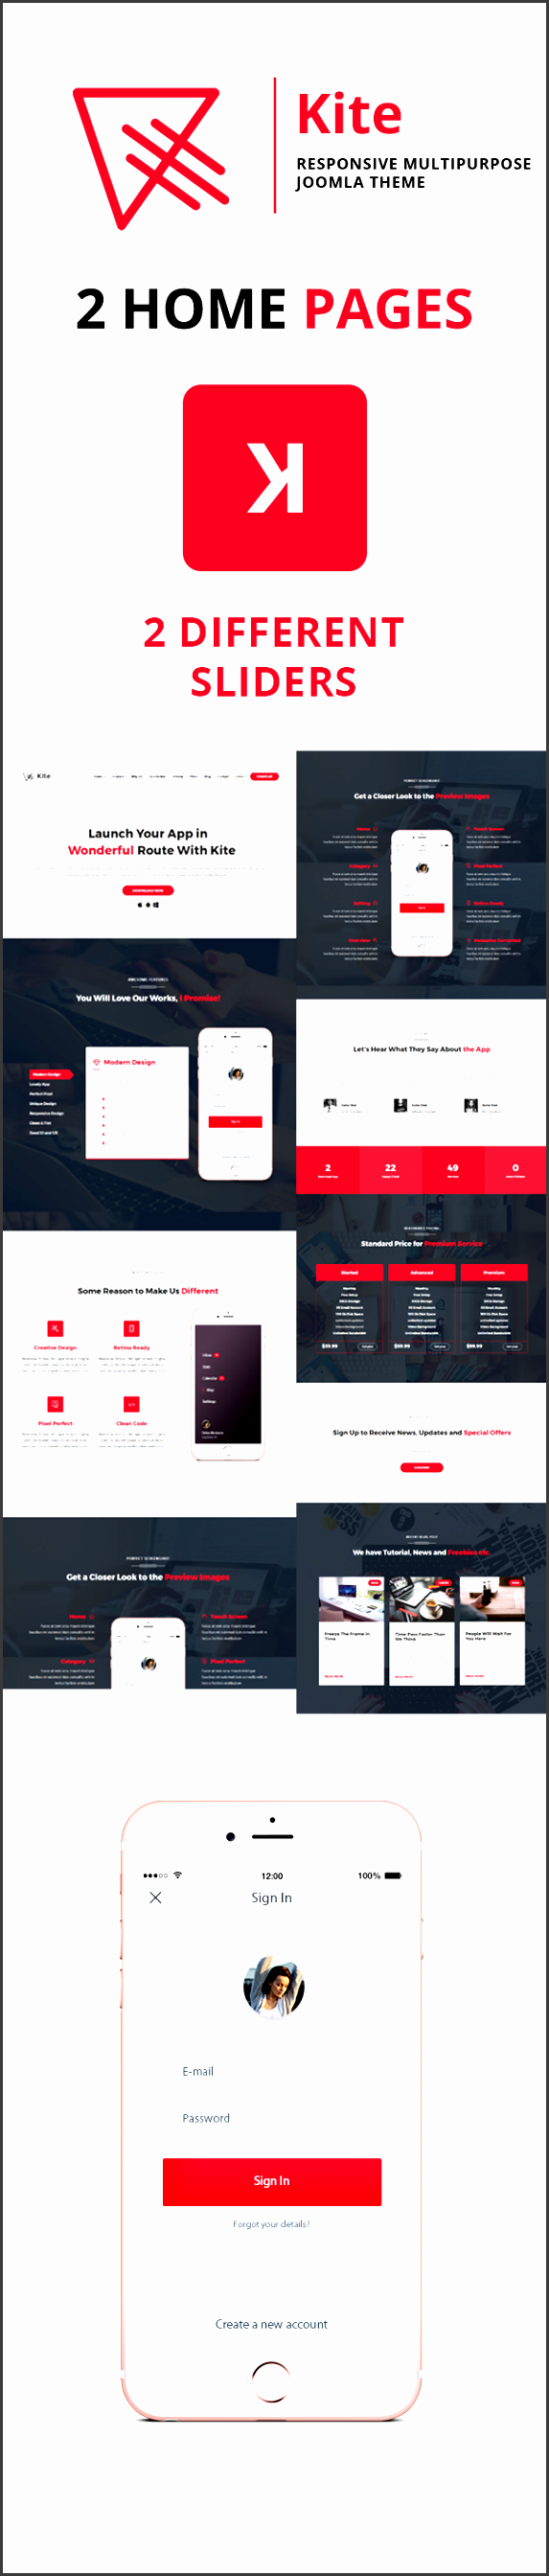 powerful helix framework drag and drop pages sp page builder pro included as free for our clients mega menu layout builder responsive menu